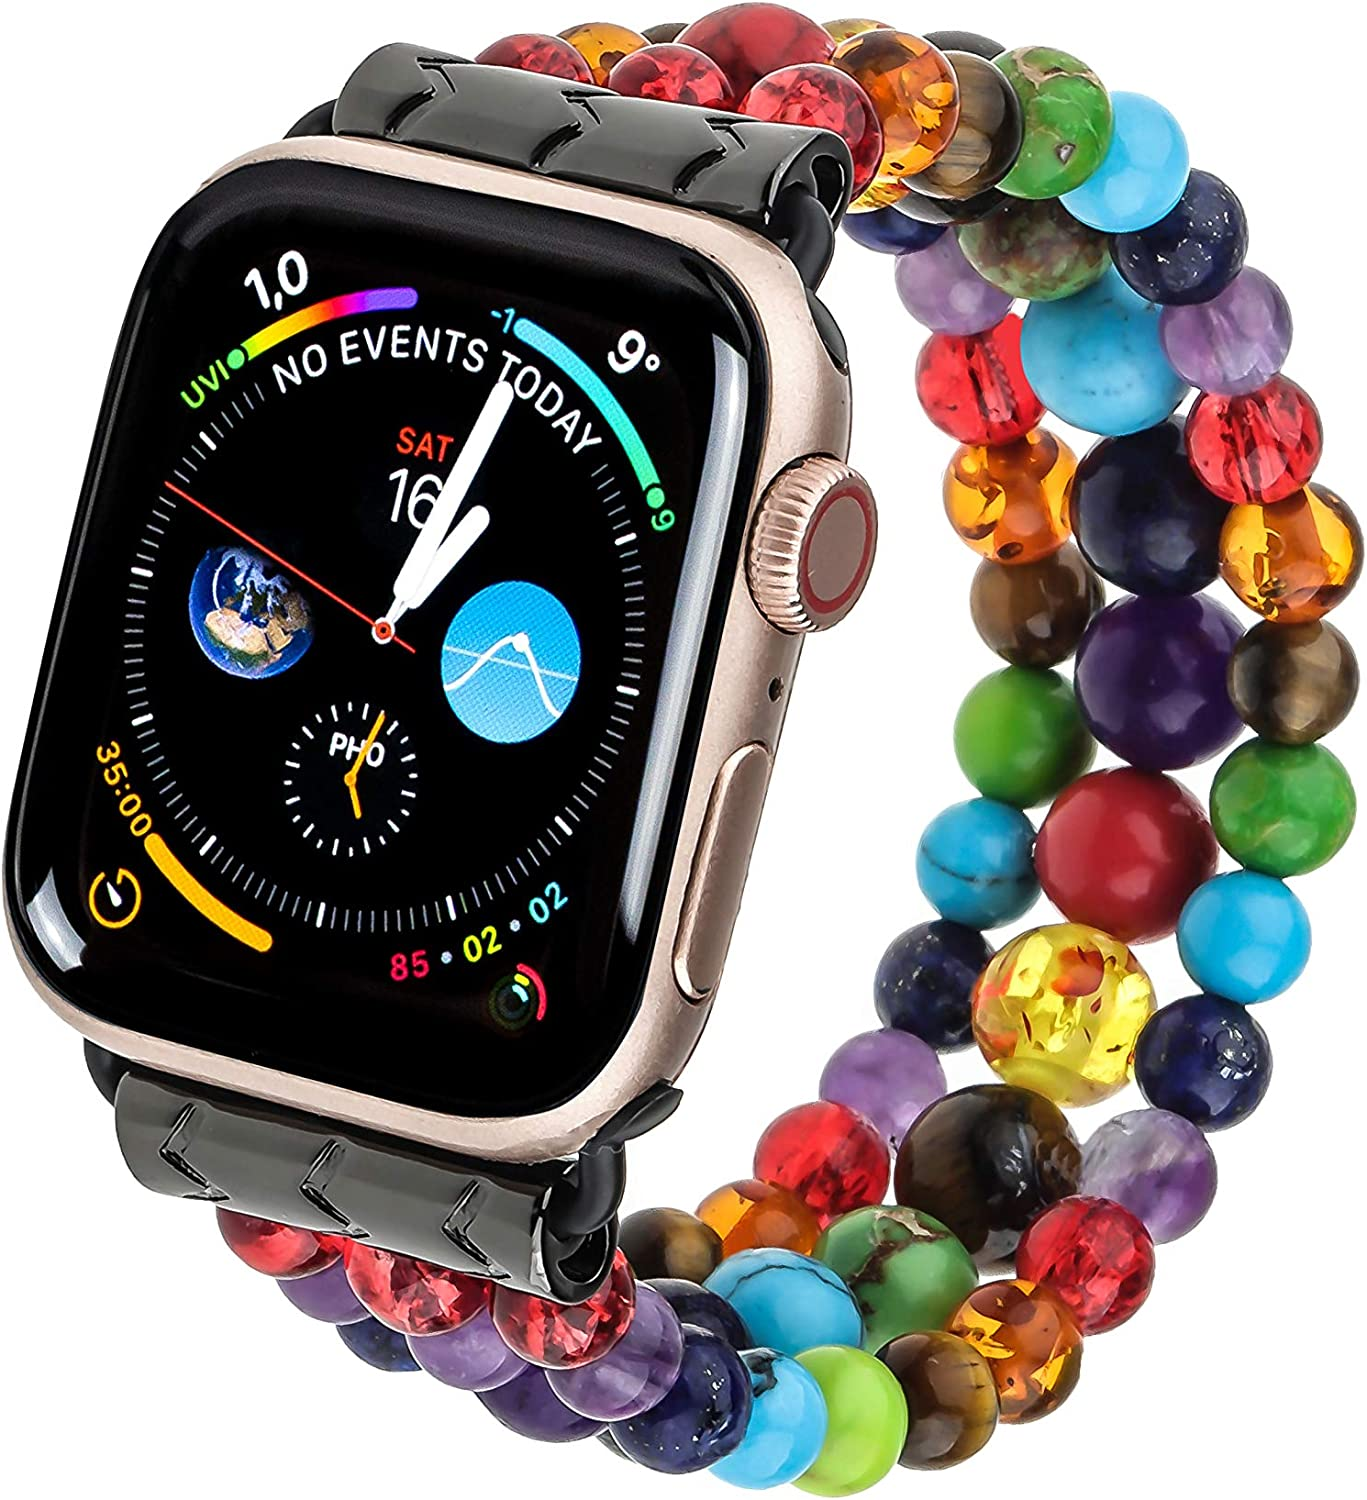 PLTGOOD Beads Bracelet Apple Watch Band 38mm/40mm, 42mm/44mm Watch Strap for Women Men - Apple iWatch Series 5/4/3/2/1